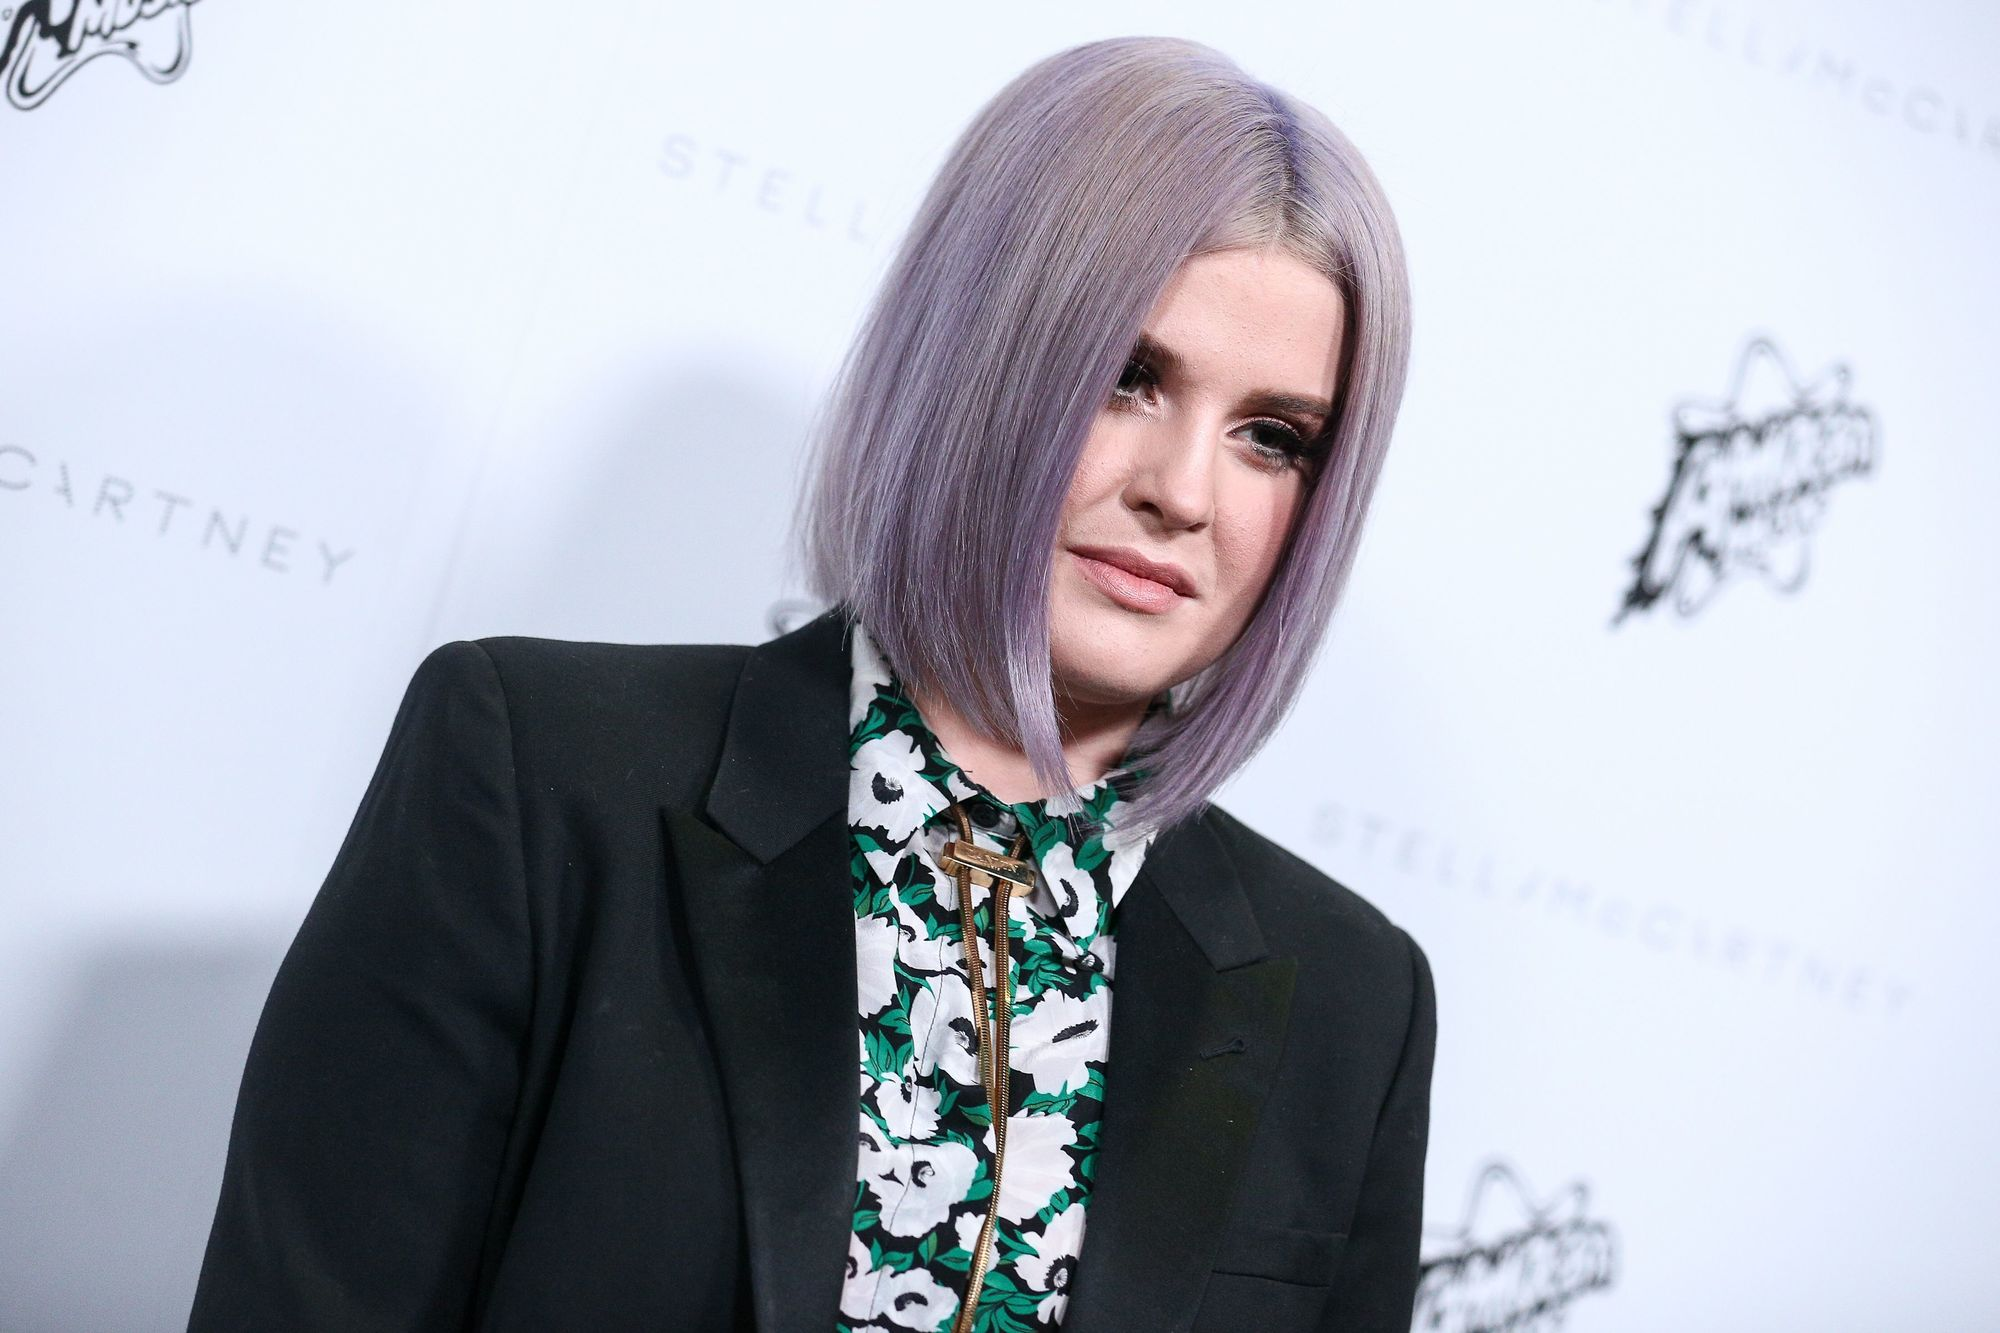 kelly osbourne in a floral shirt and black blazer with a short lilac bob